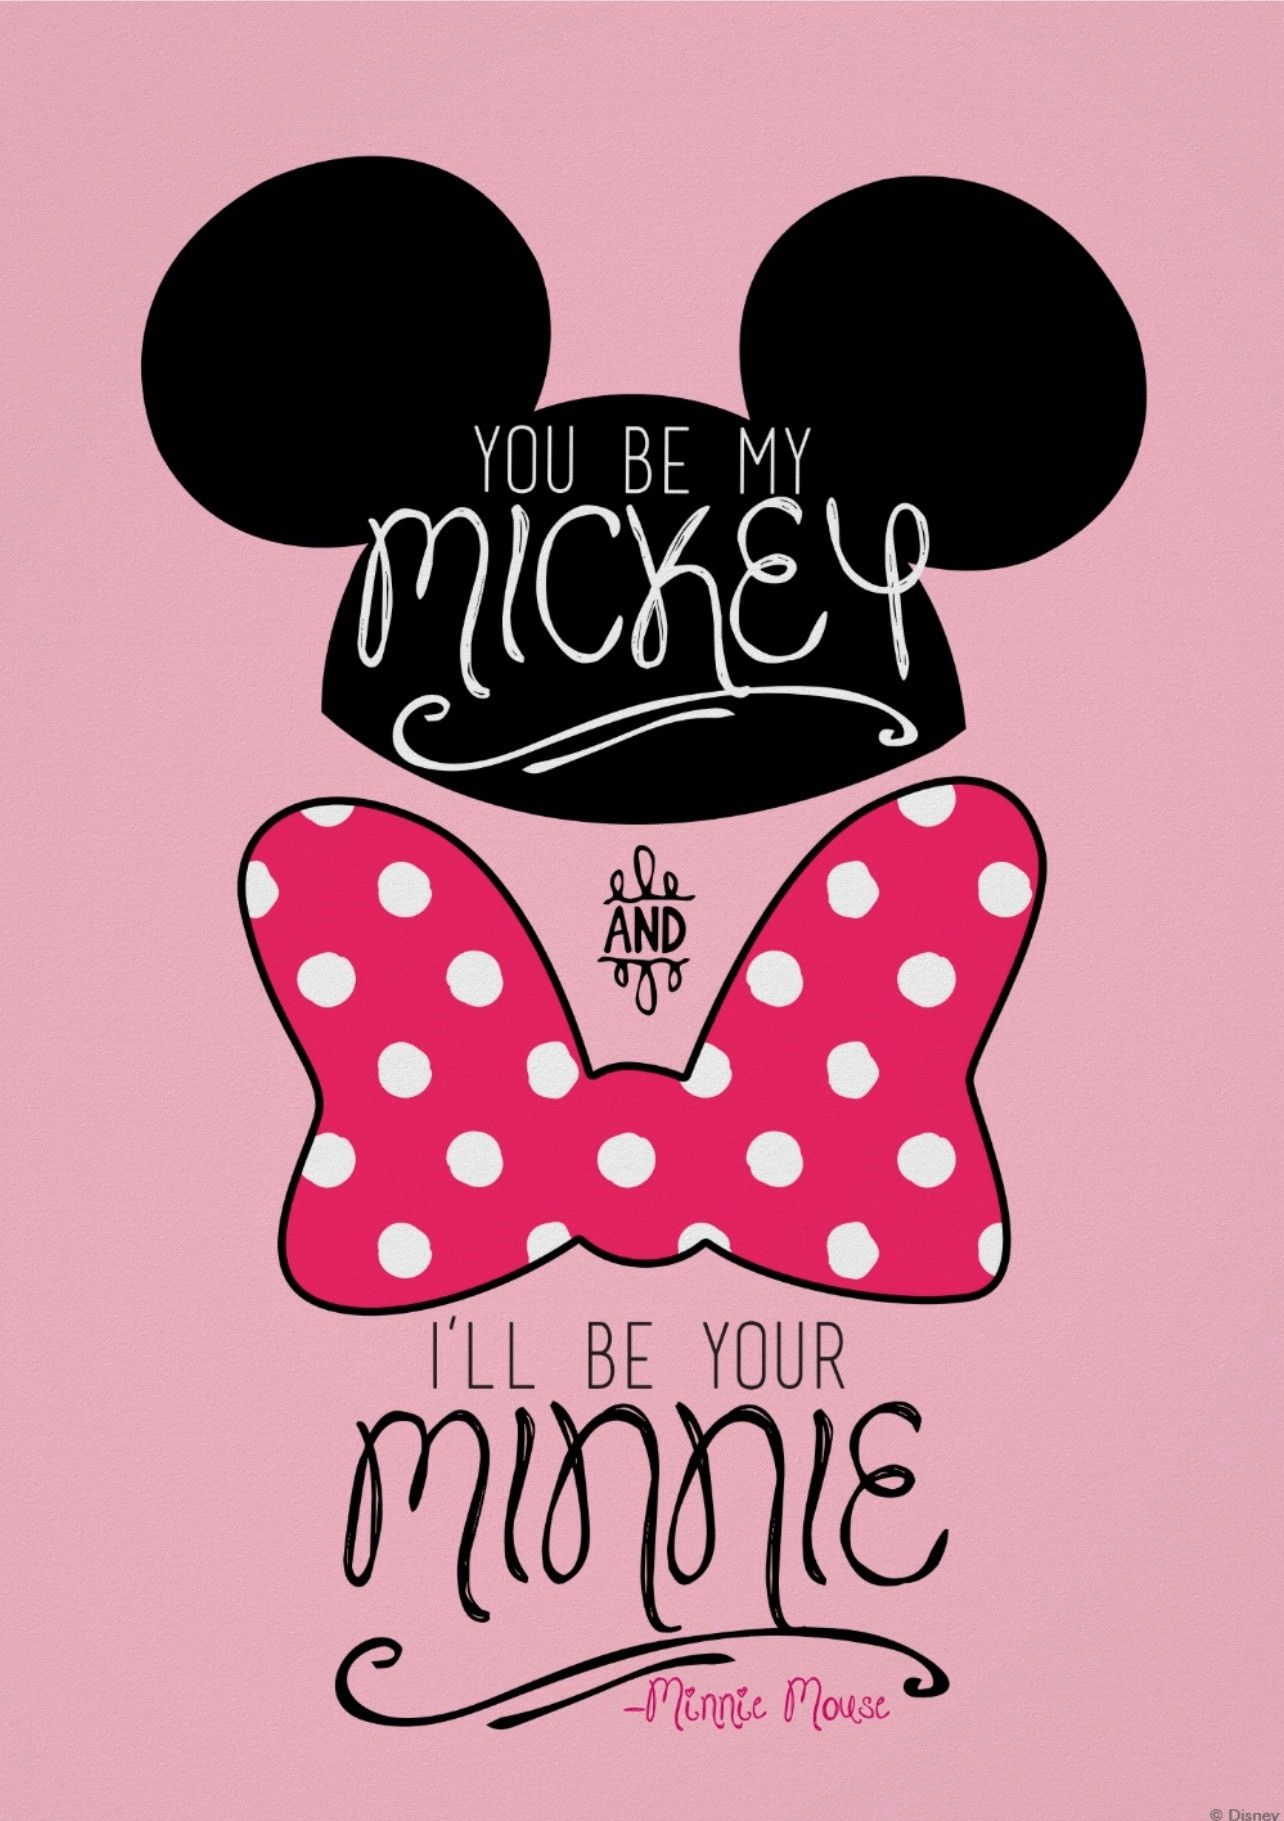 Wallpaper iphone mickey mouse - Mickey Minnie Wallpapers Wallpapers Free Backgrounds And Wallpapers